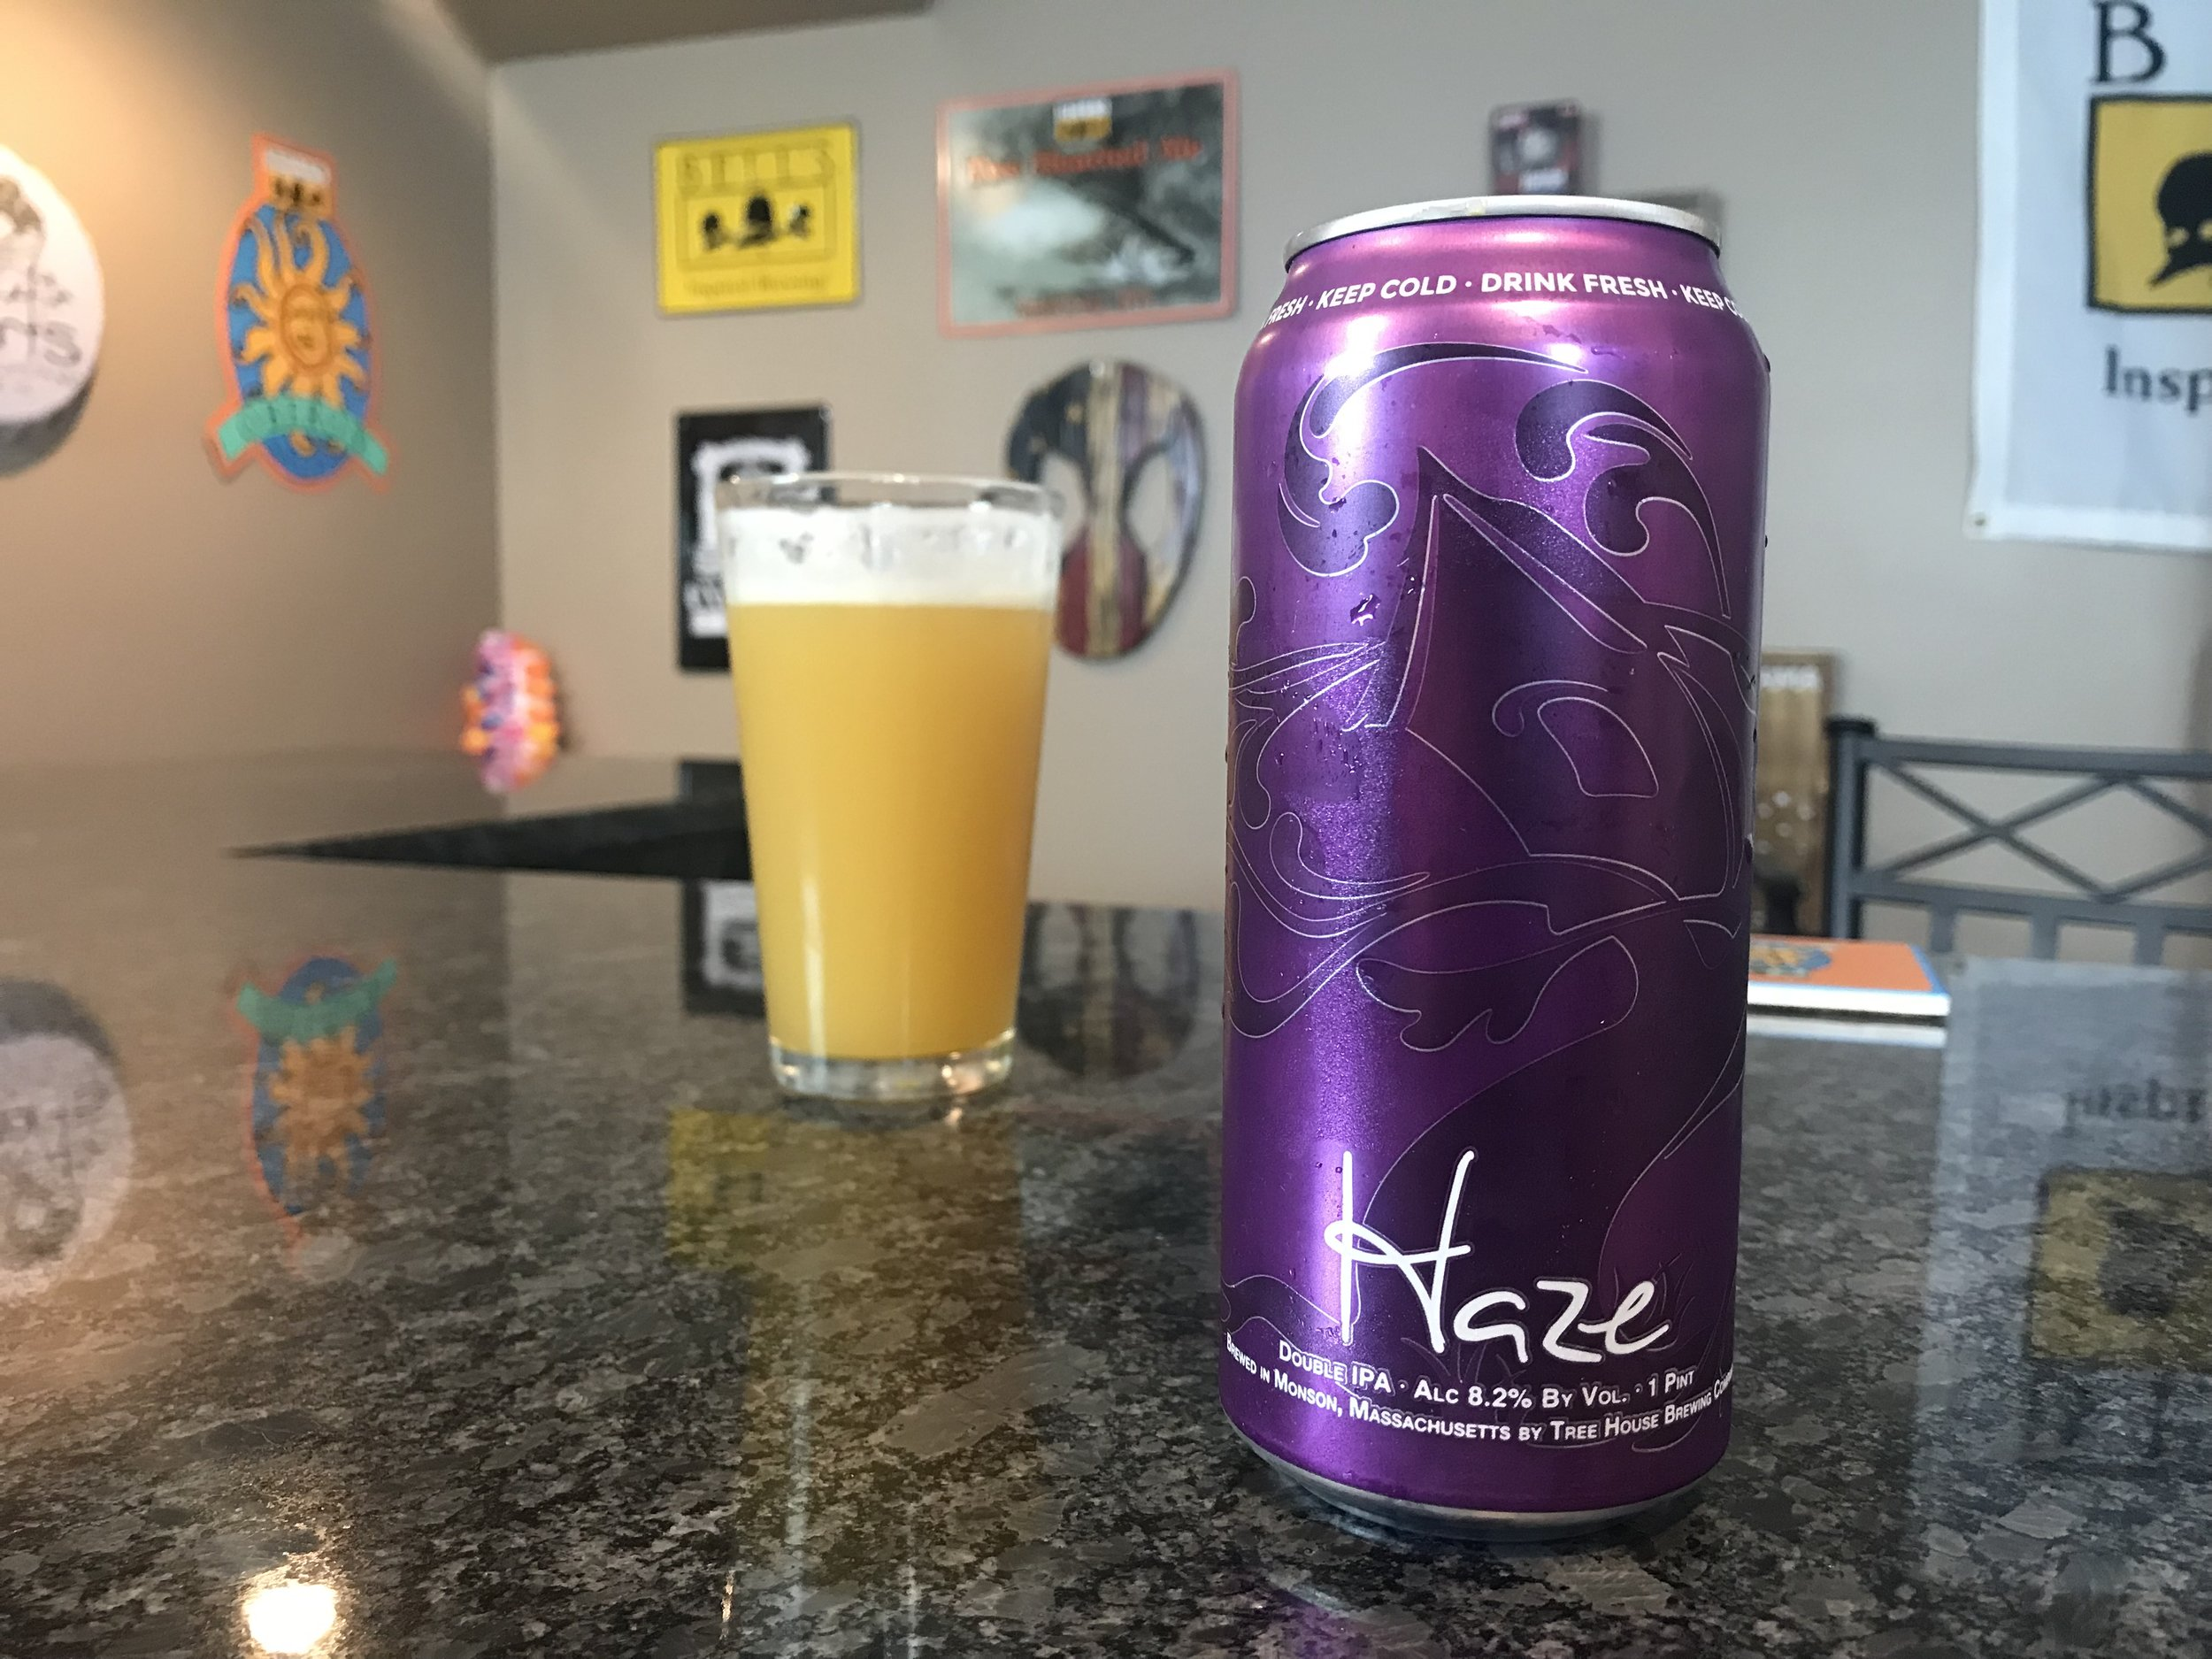 Haze DIPA 8.2% - Want to see the Video Review? Click on the image.